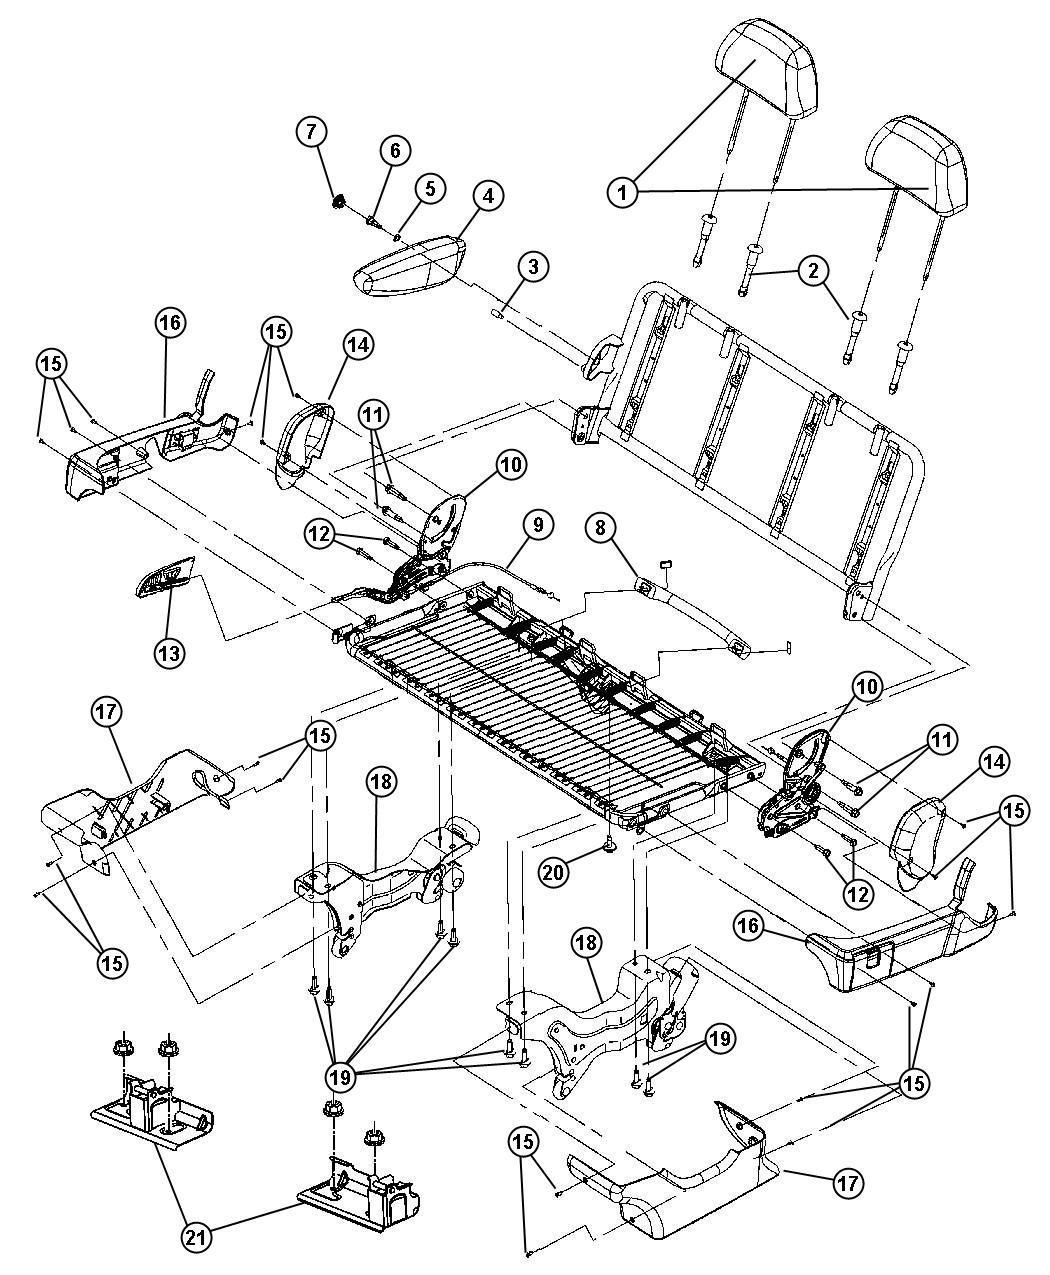 [DIAGRAM] For A 1997 Plymouth Grand Voyager Engine Diagram